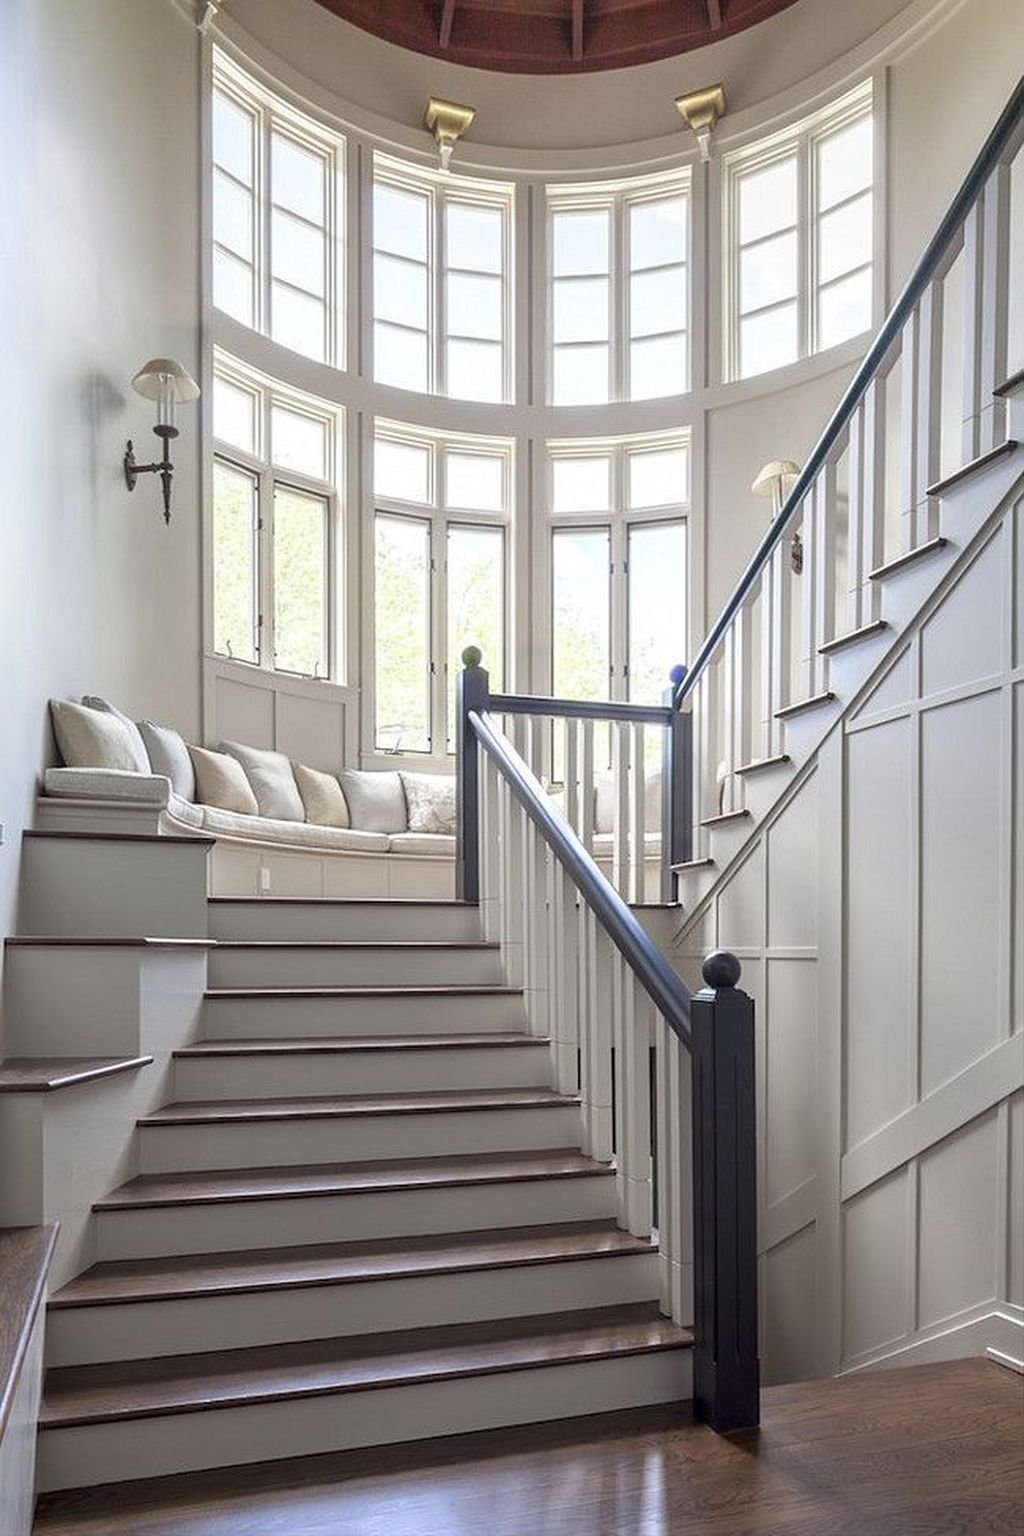 Brilliant Staircase Design Ideas To Beautify Your Interior 31